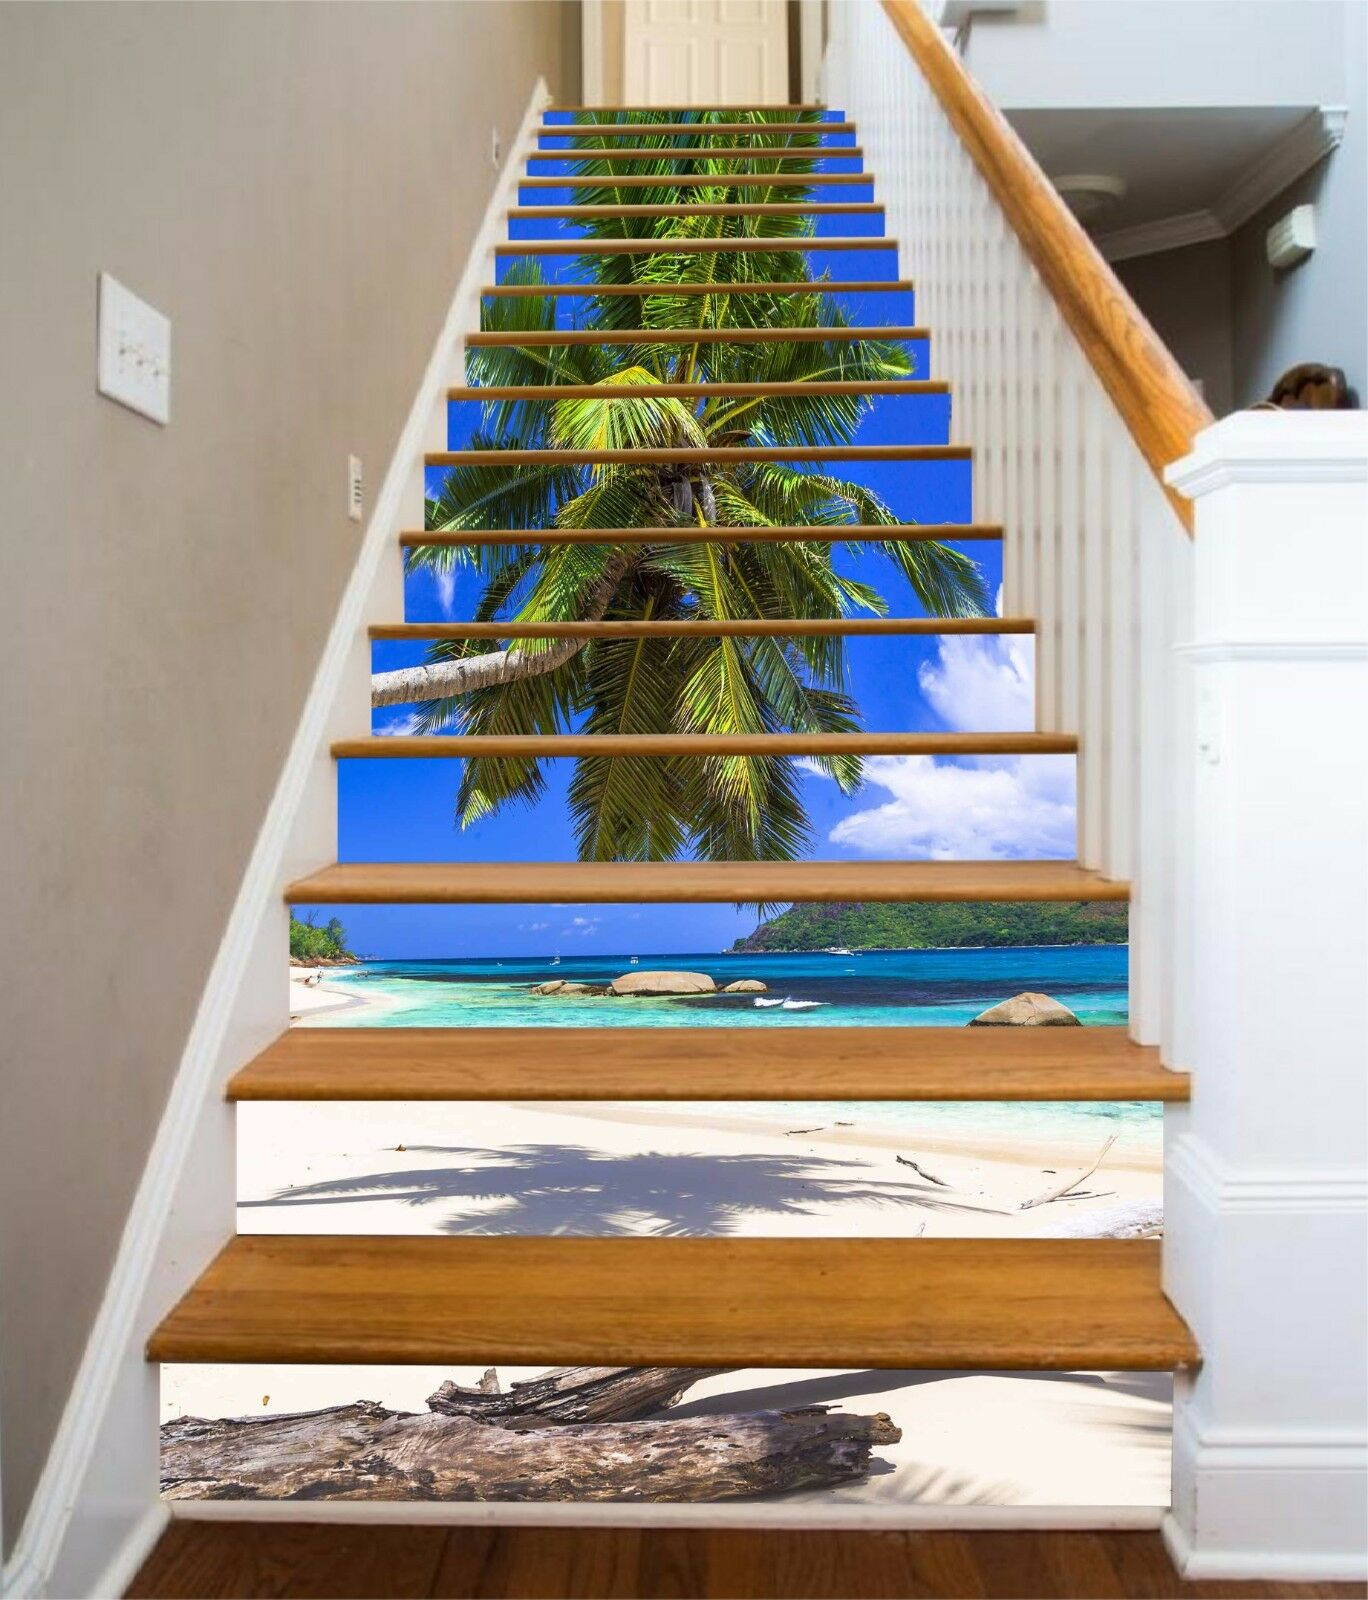 3D Bay Beach 394 Stairs Risers Decoration Photo Mural Vinyl Decal WandPapier US12